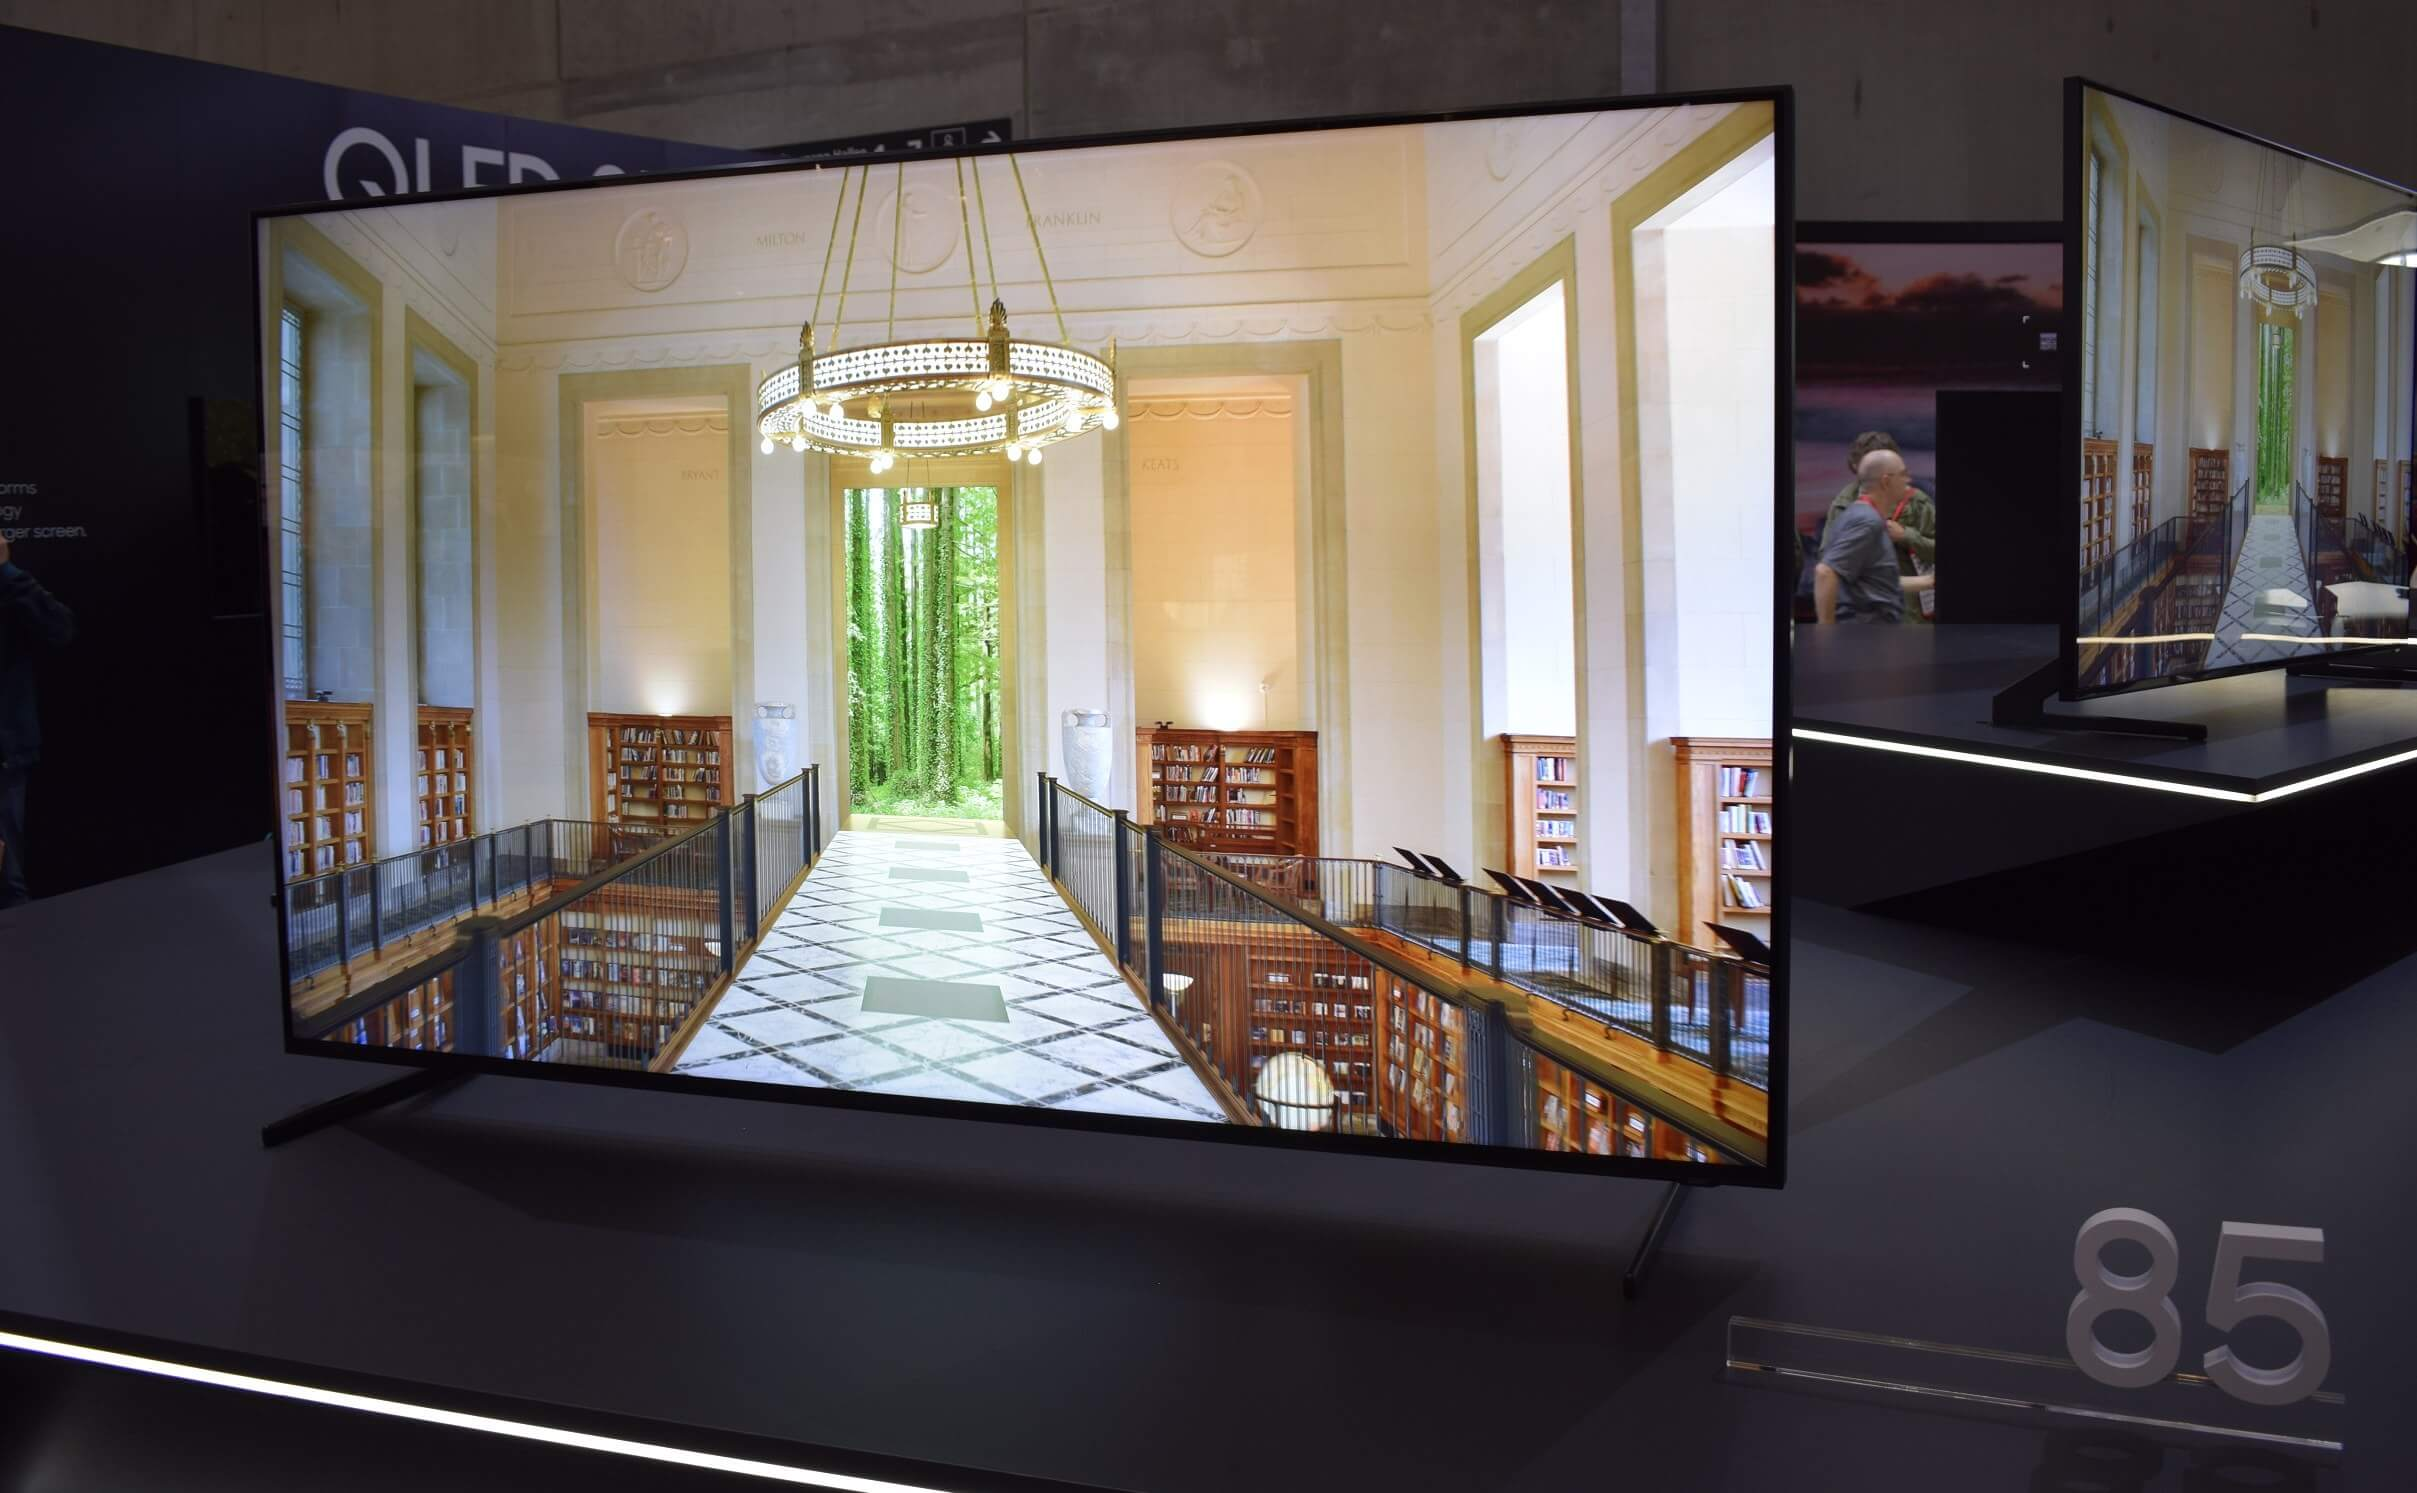 Samsung's 85-inch 8K QLED TV can now be pre-ordered for $15,000